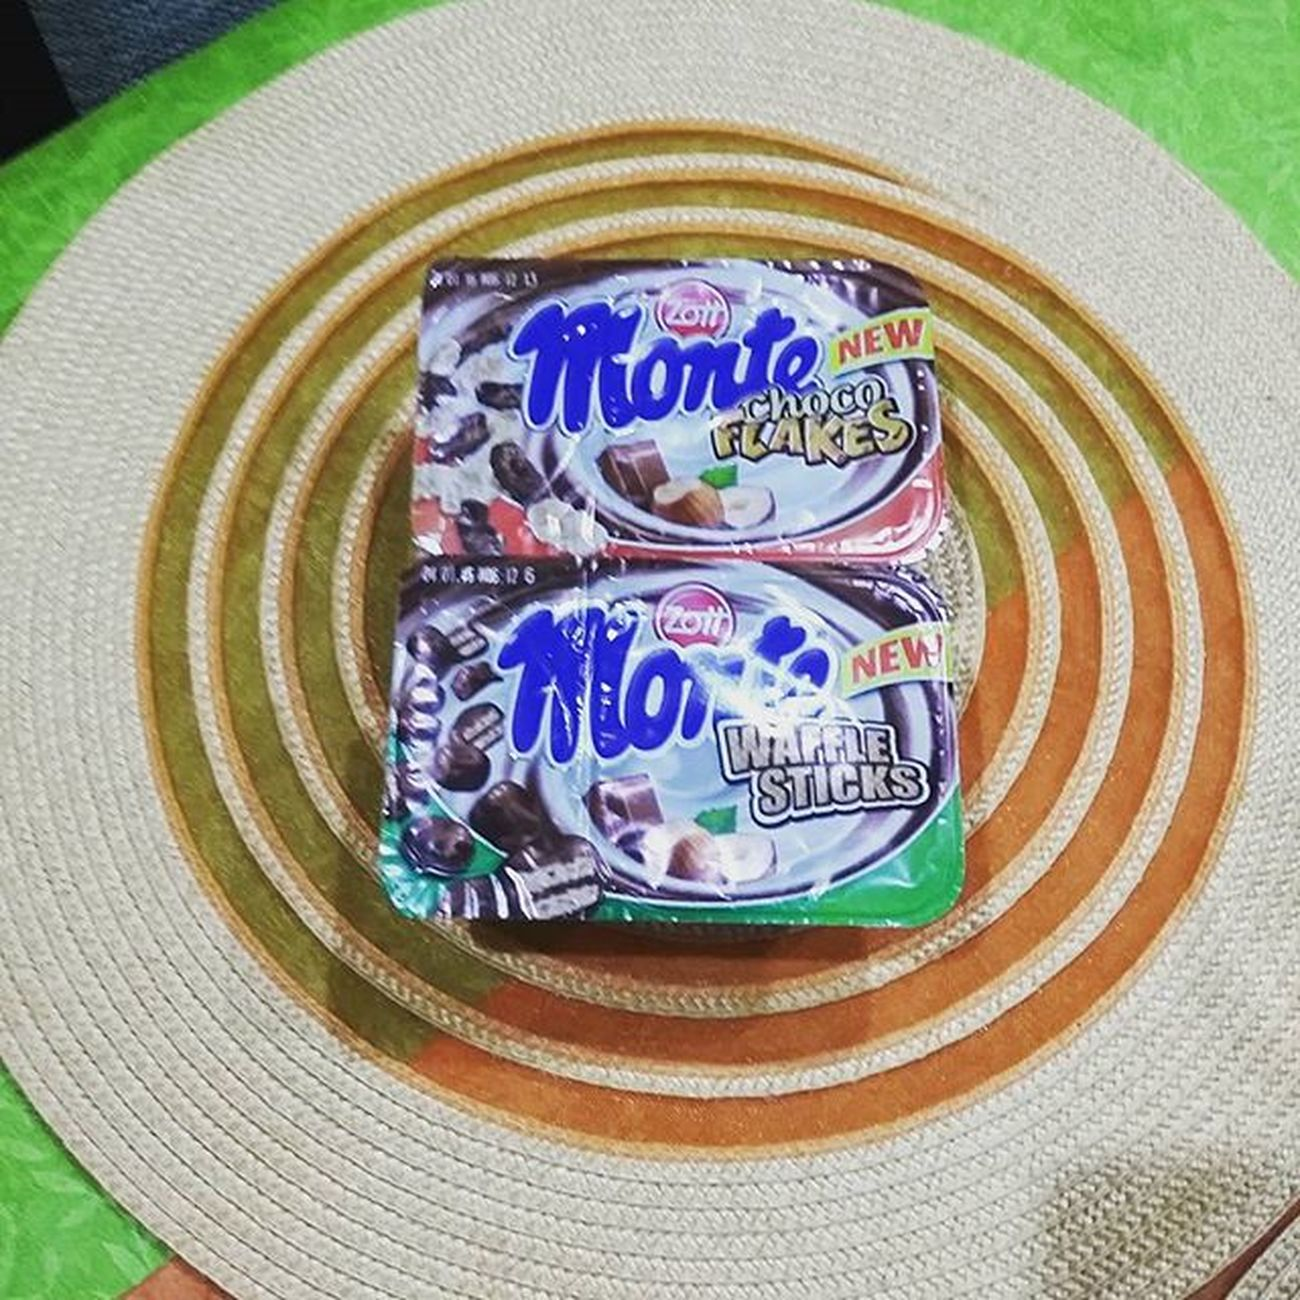 Nowości New Zakupy Kaufland Monte Choco Flakes Waffle Sticks Peanuts Chocolate Milk Delicious Yummy Deser Dessert Jogurt Serek Free Time Shopping Polishgirl Poland Likeforlike Beautiful beautyl4lf4f